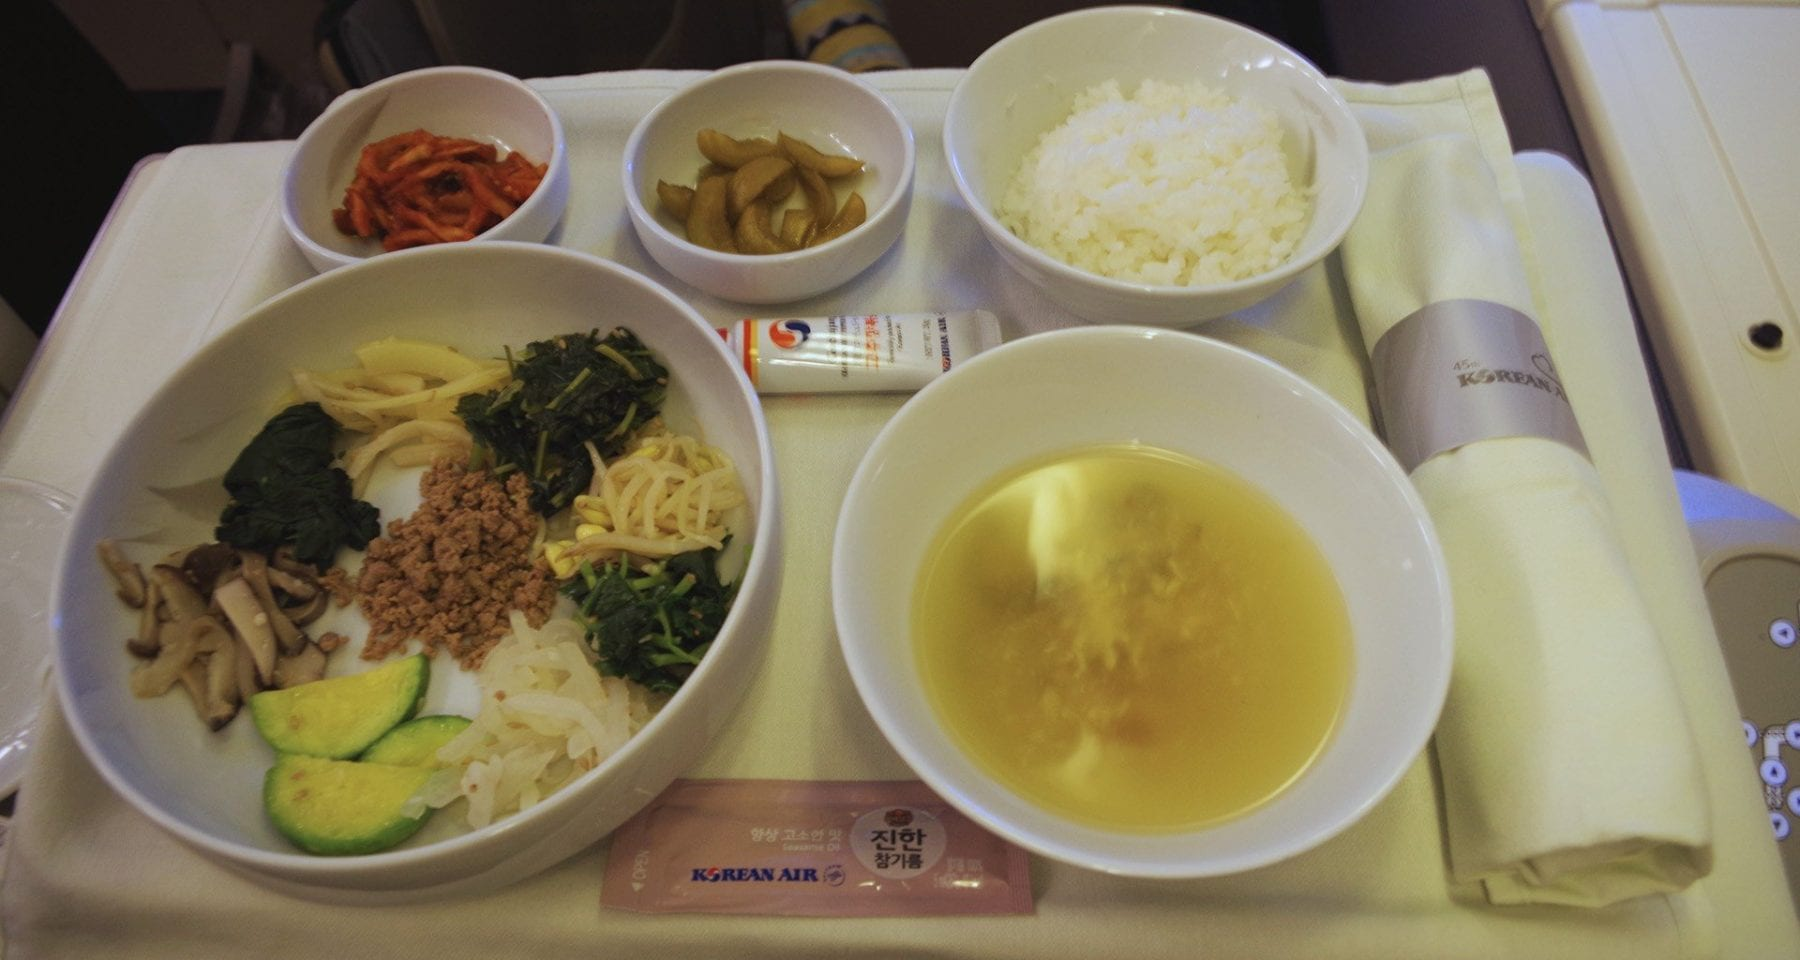 Korean Air bibimbap business class meal